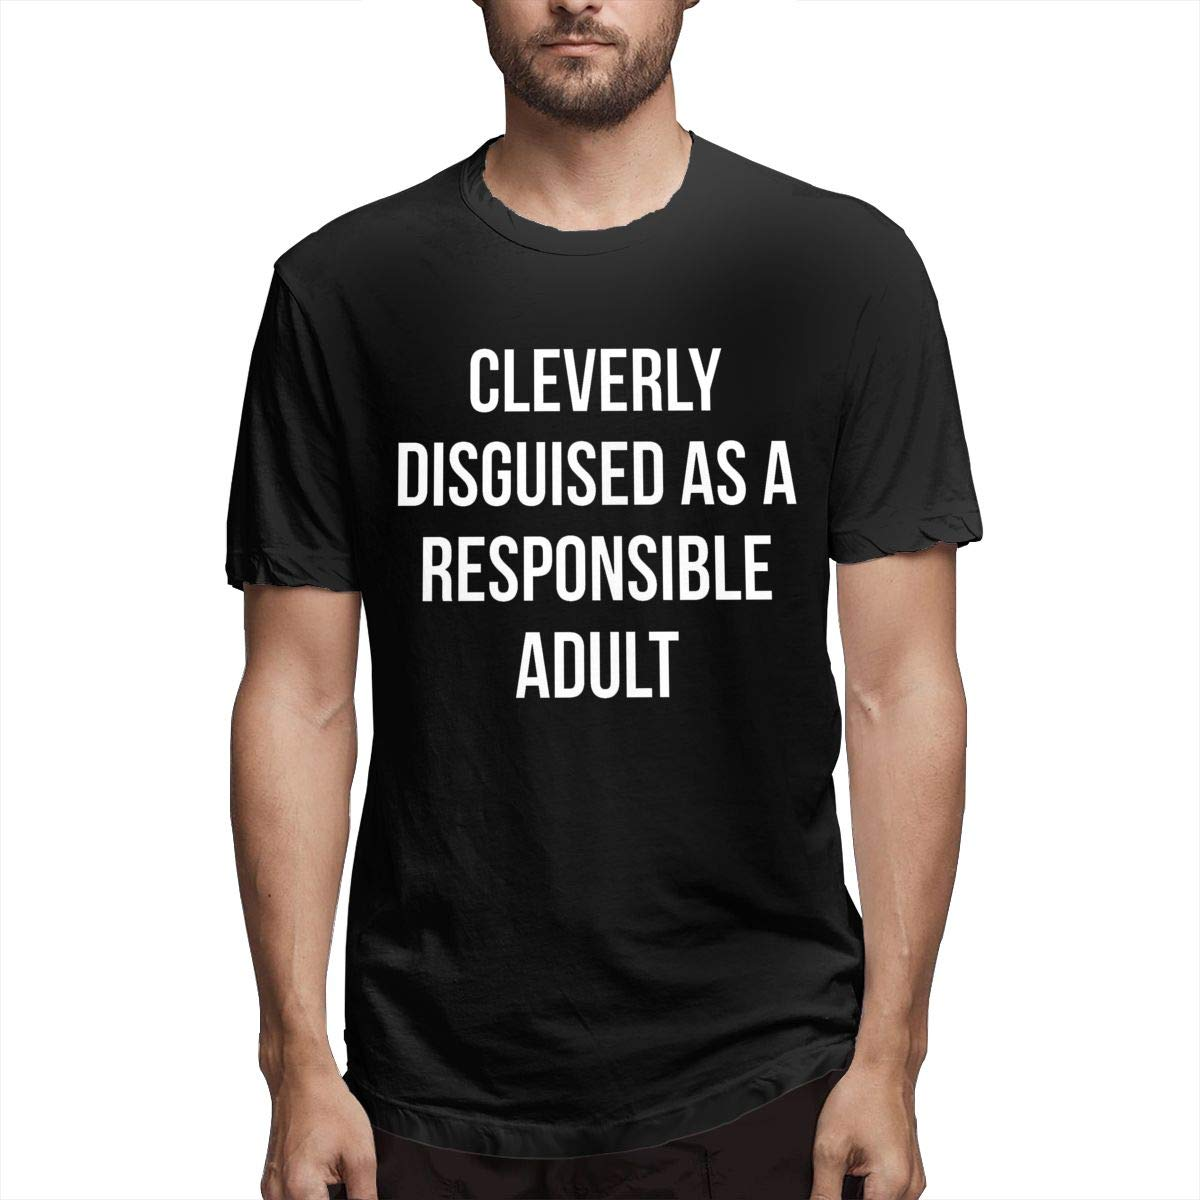 Cleverly Disguised As A Responsible Adult,Funny and Cool Mens Short-Sleeved T-Shirt Black